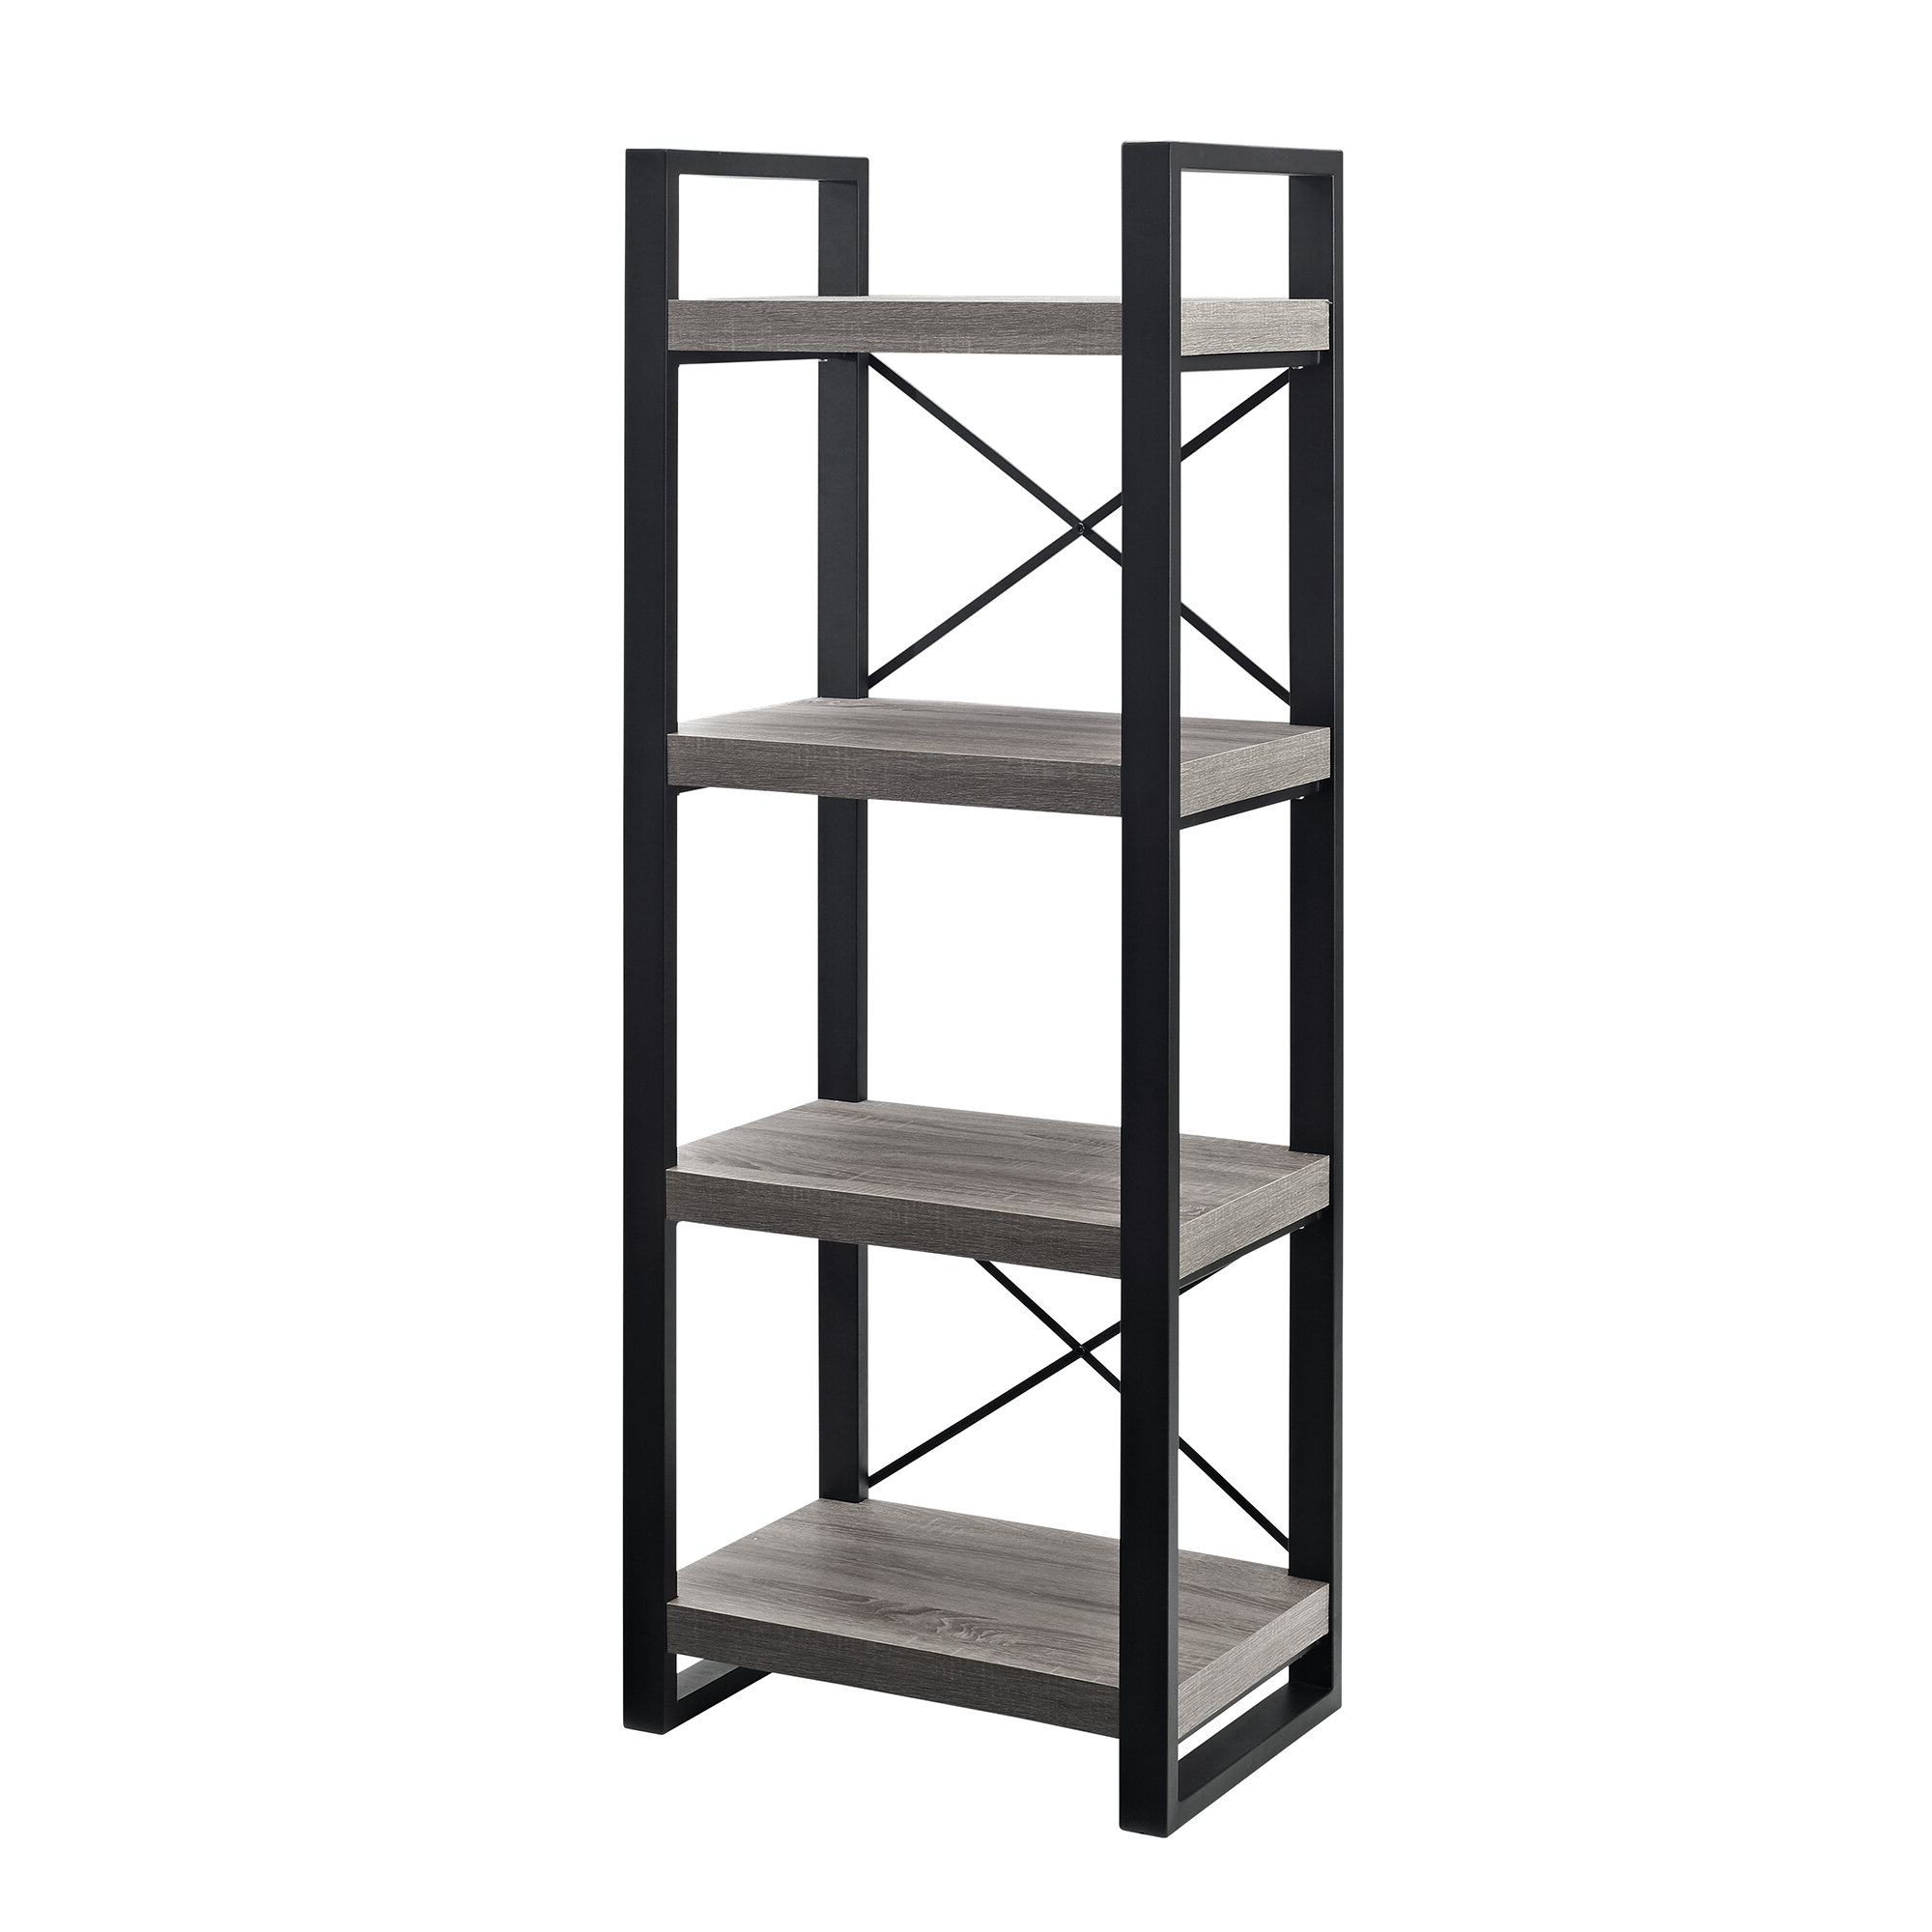 Bowman Etagere Bookcases With Regard To Latest Rossman Etagere Bookcase (View 13 of 20)